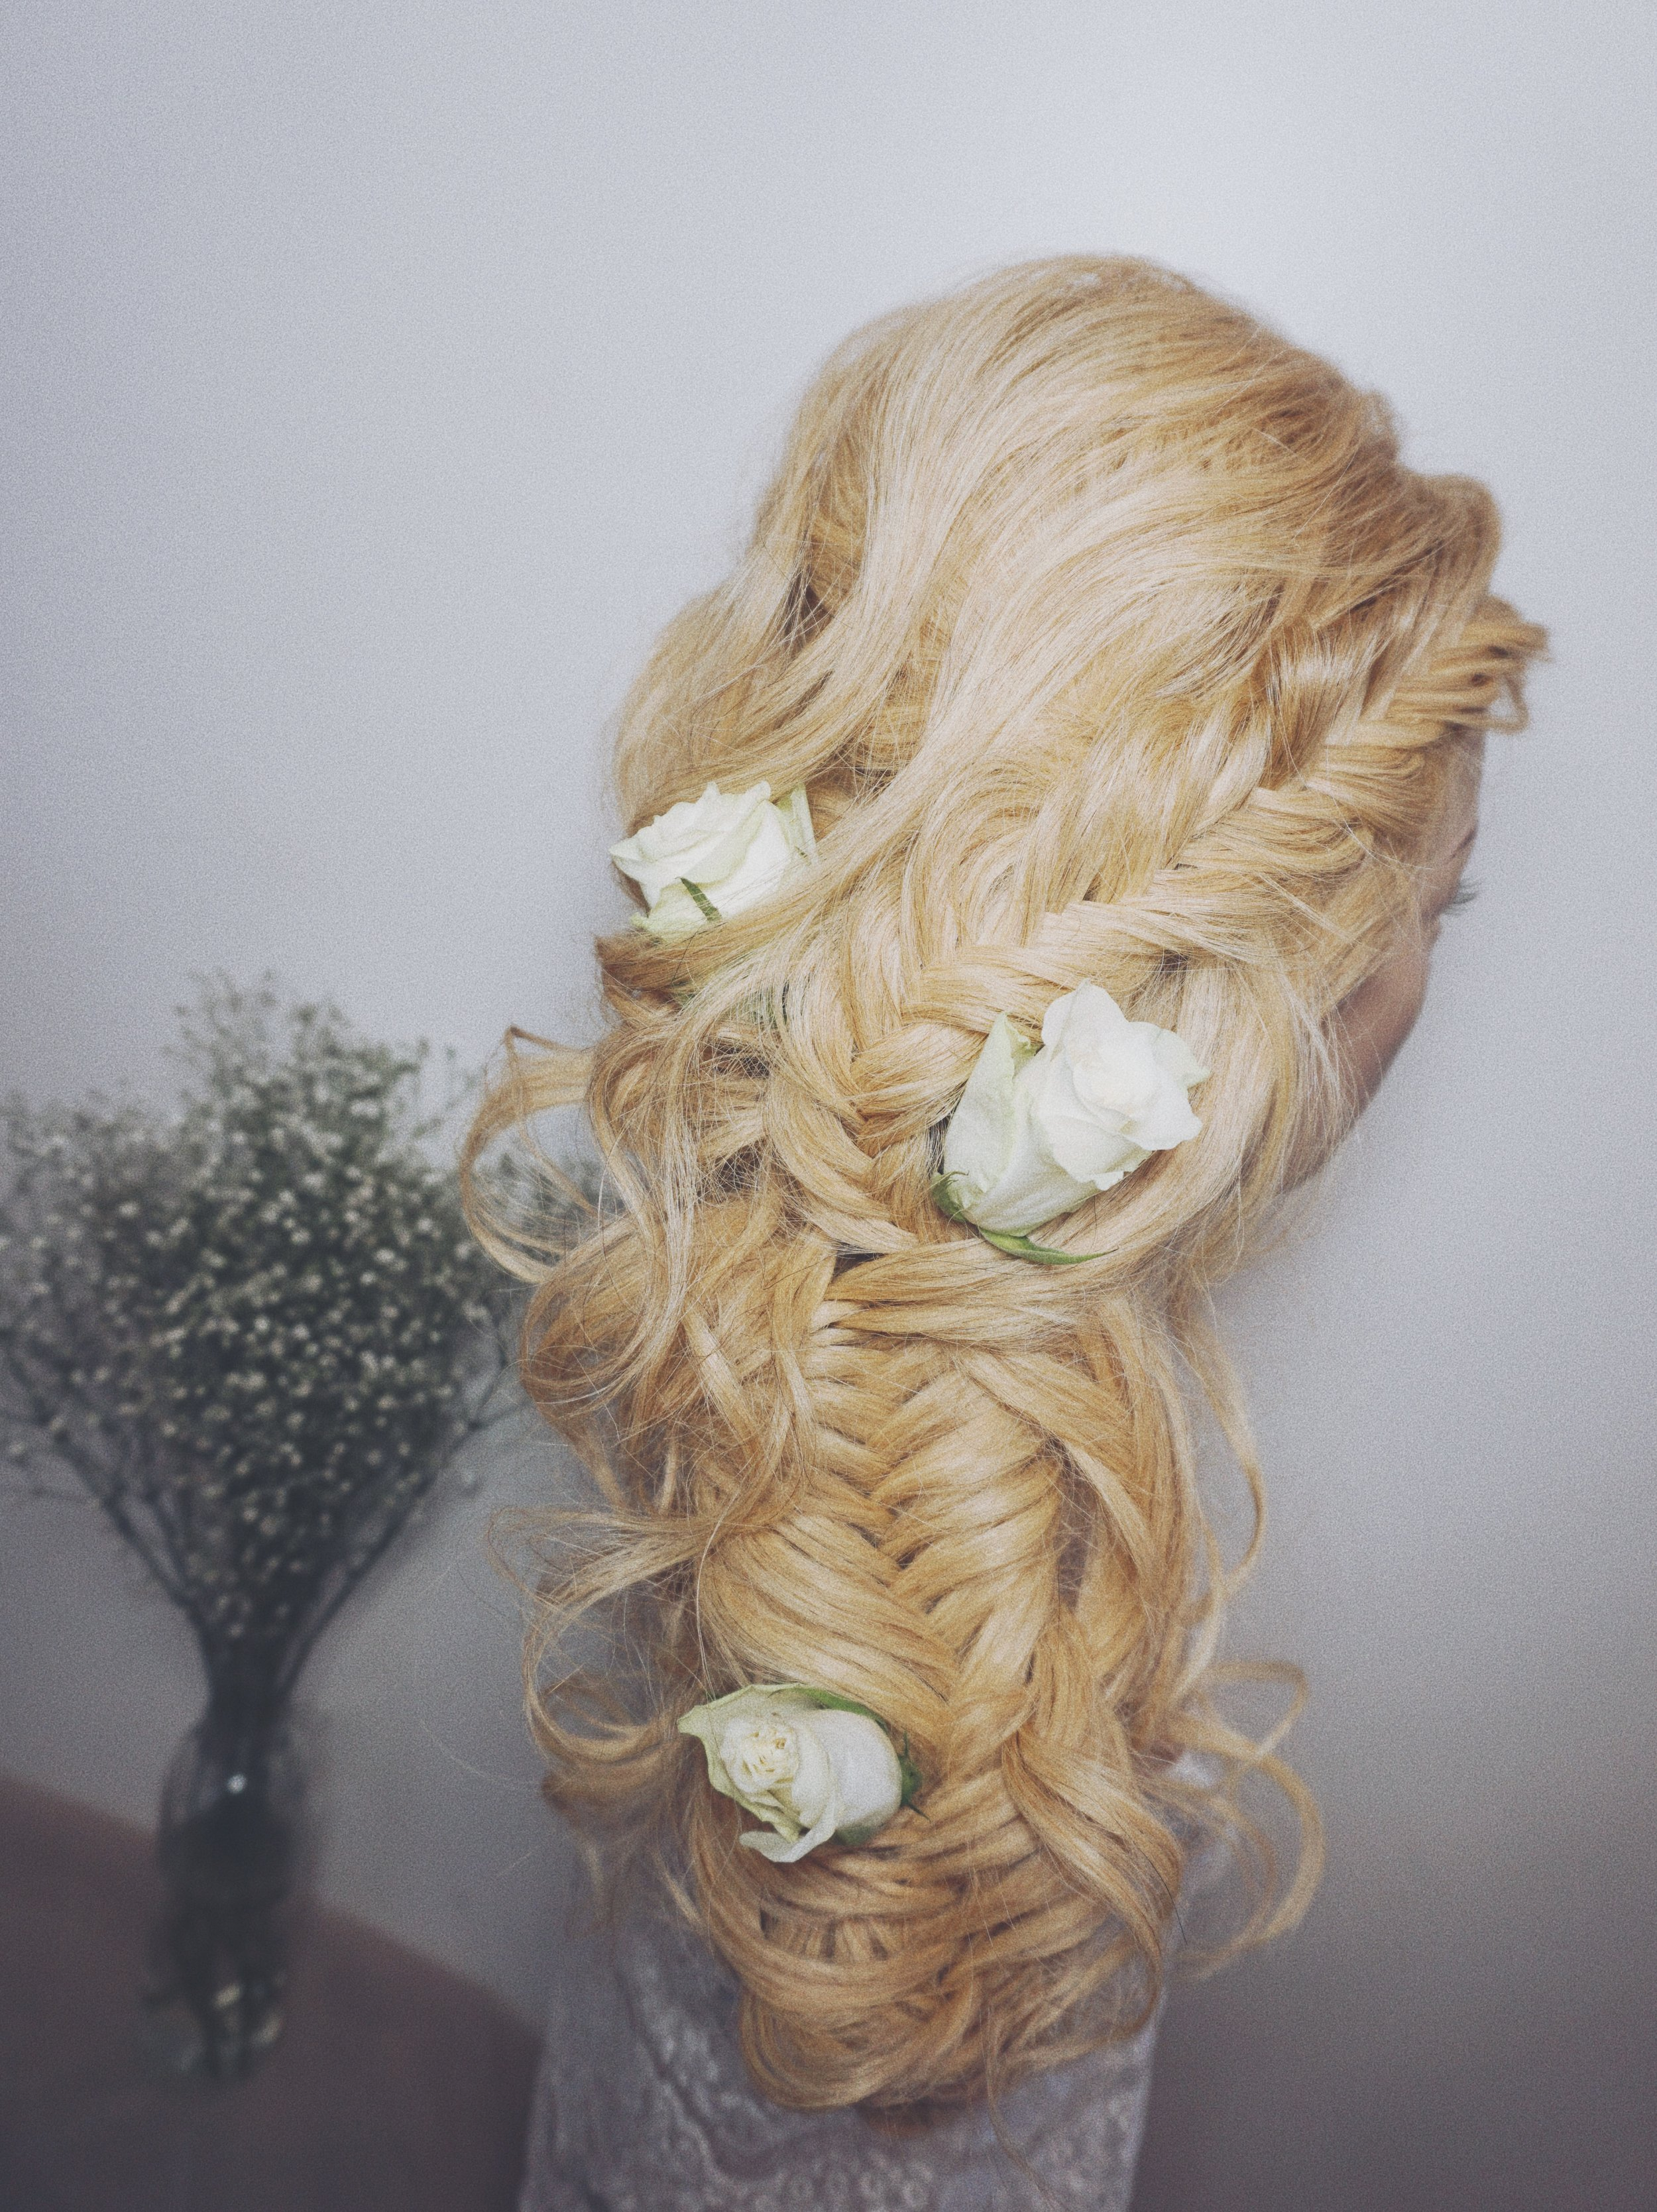 down the side fishtail braided wedding hairstyle idea with floral hair accessories